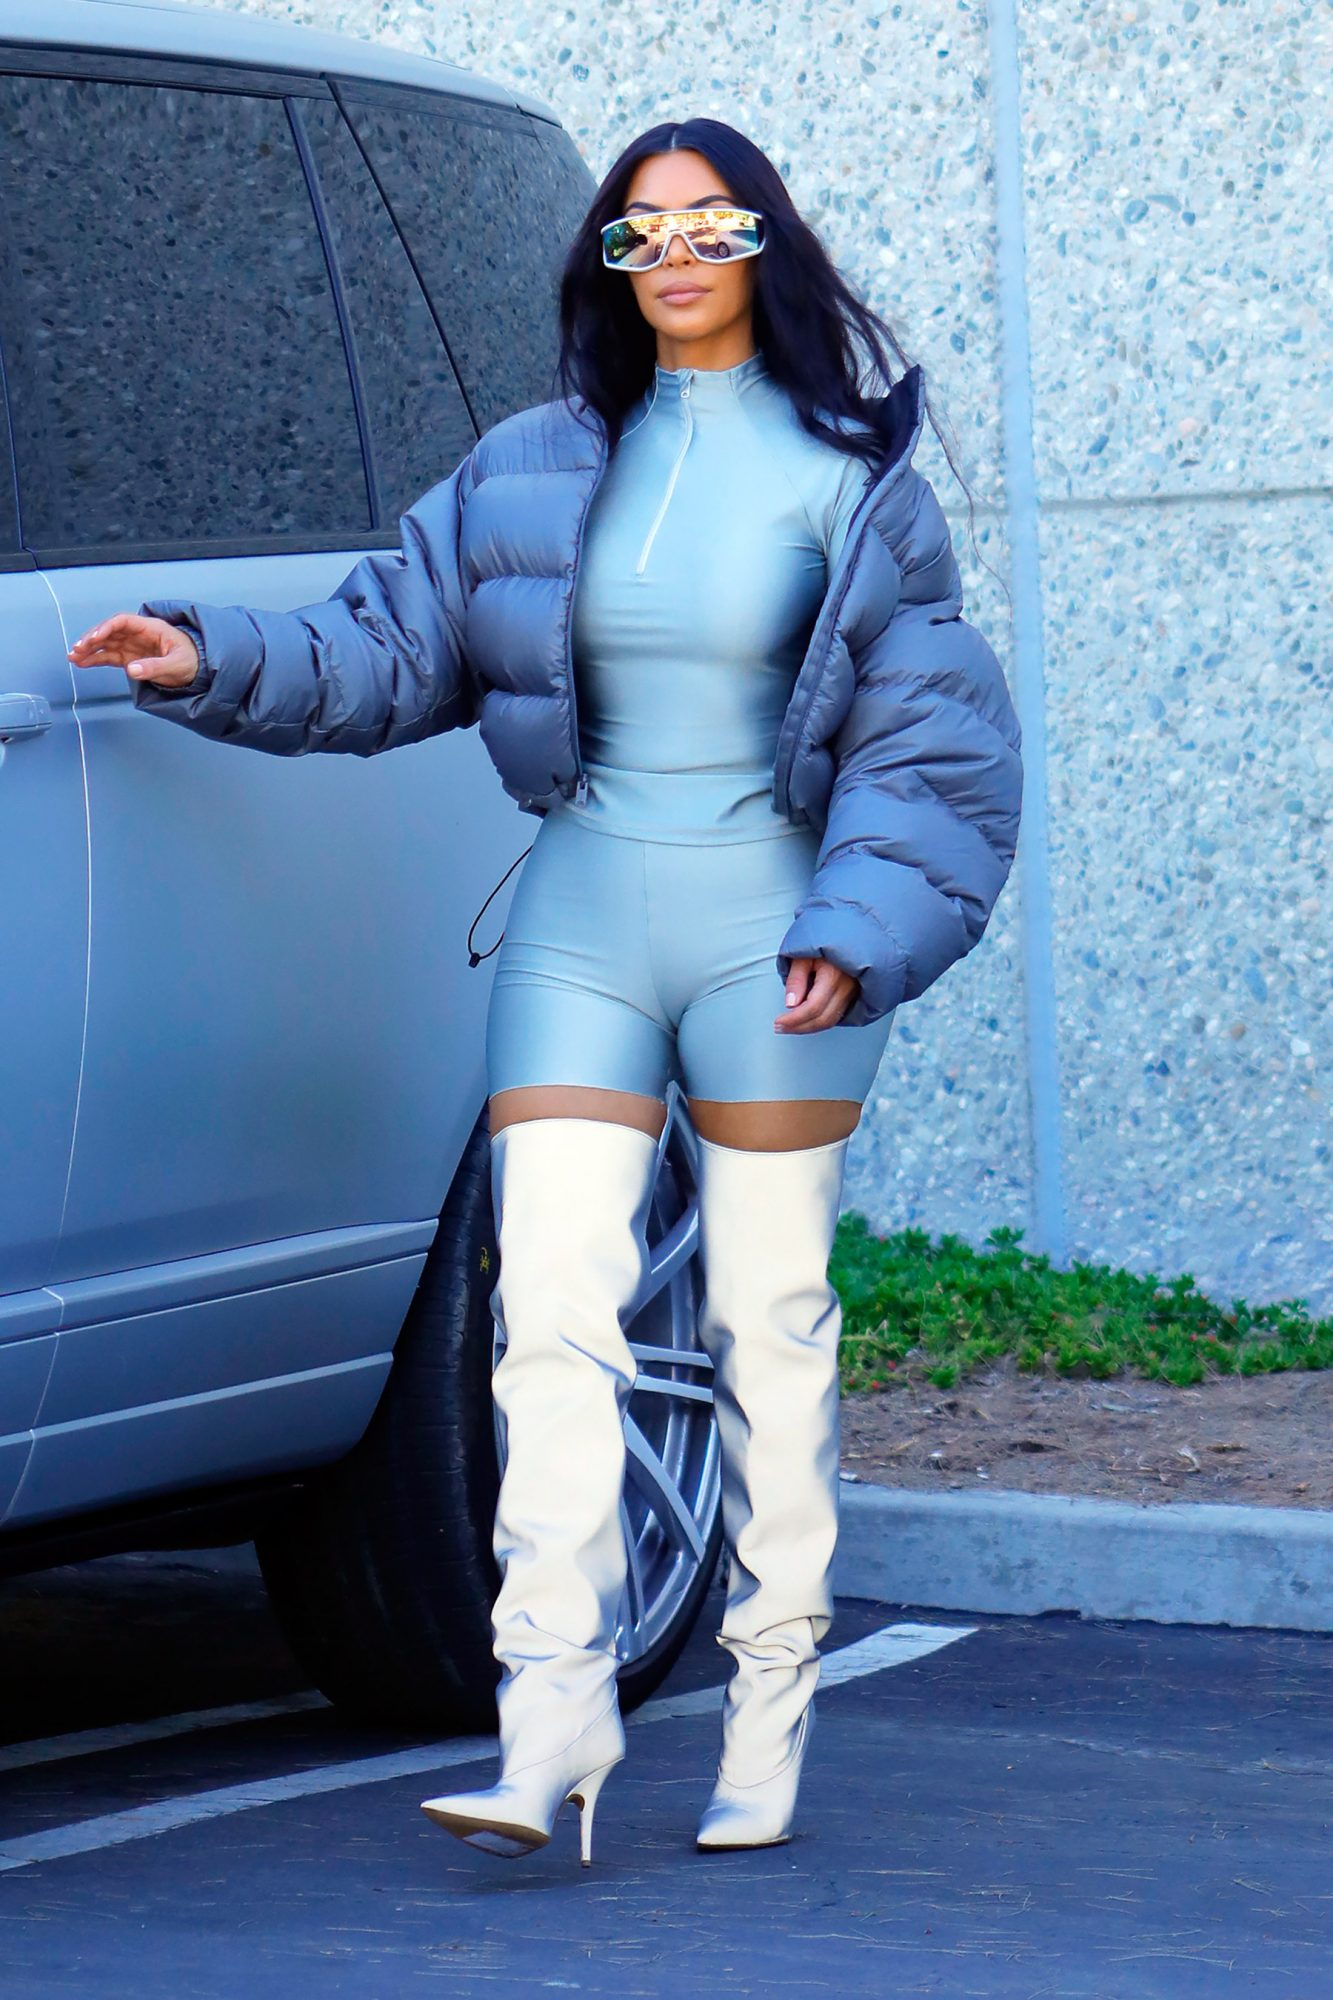 EXCLUSIVE: Kim Kardashian is seen arriving at an office building for a photoshoot wearing a futuristic look